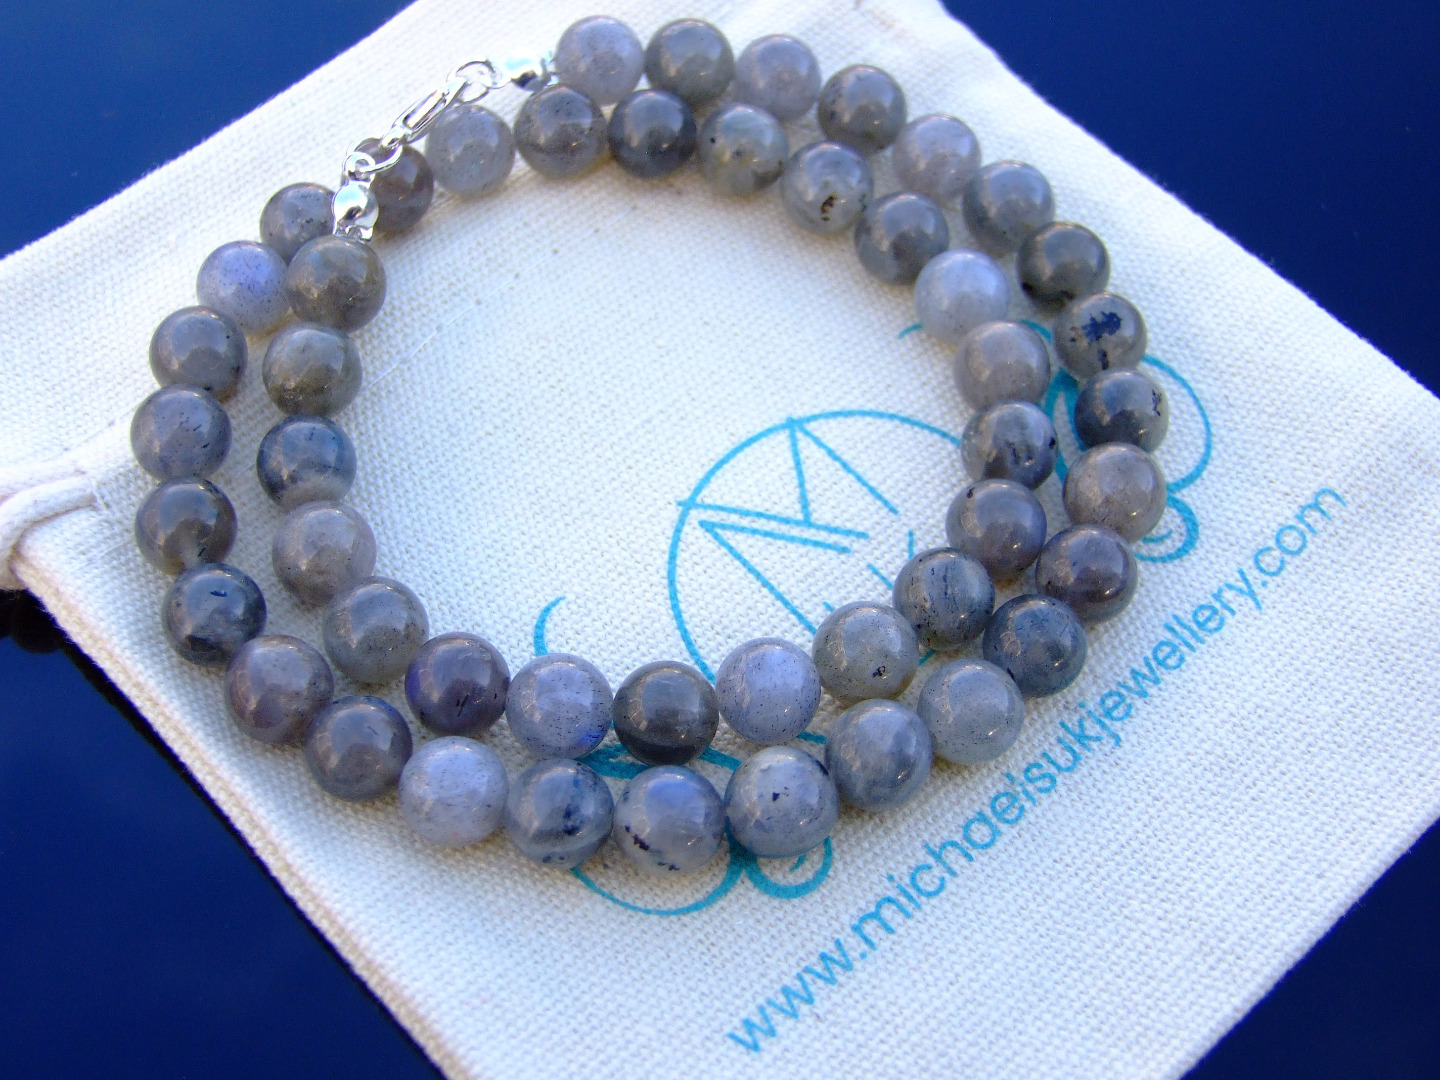 Aa Grade Multi Fluorite Natural Gemstone Necklace 8mm Beaded Silver 16-30inch Healing Stone Chakra Reiki With Pouch FREE UK SHIPPING